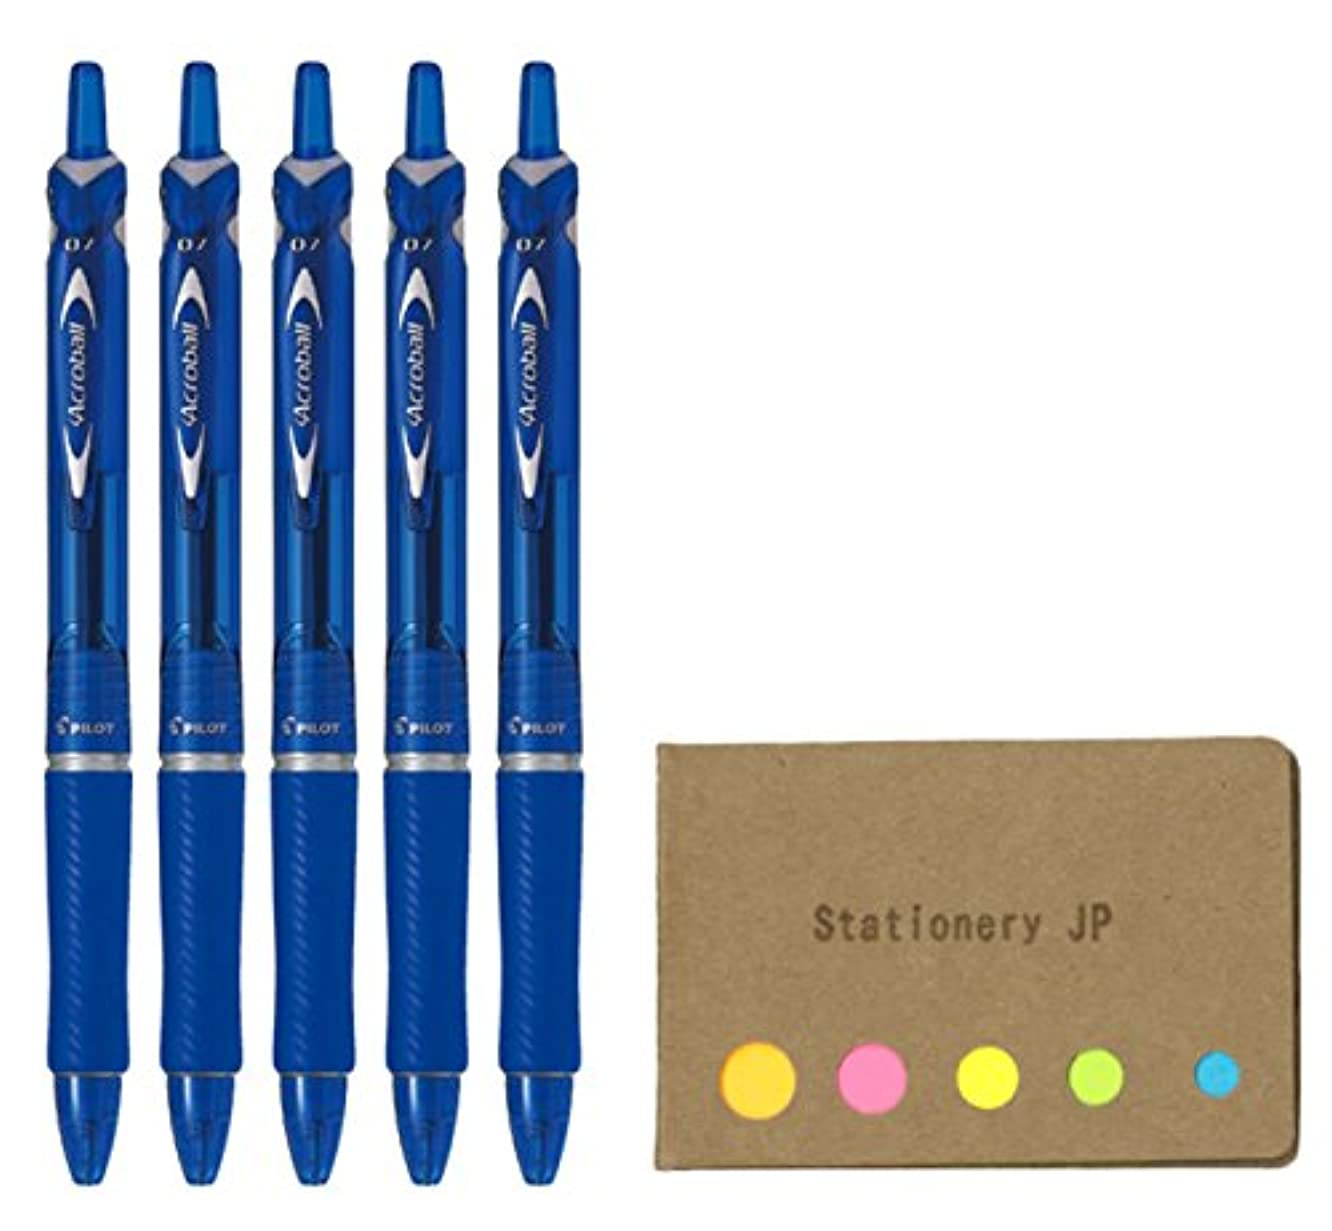 Pilot Acroball Retractable Advanced Ink Ball Point Pens, Fine Point 0.7mm, Blue Ink, Rubber Grip, 5-Pack, Sticky Notes Value Set